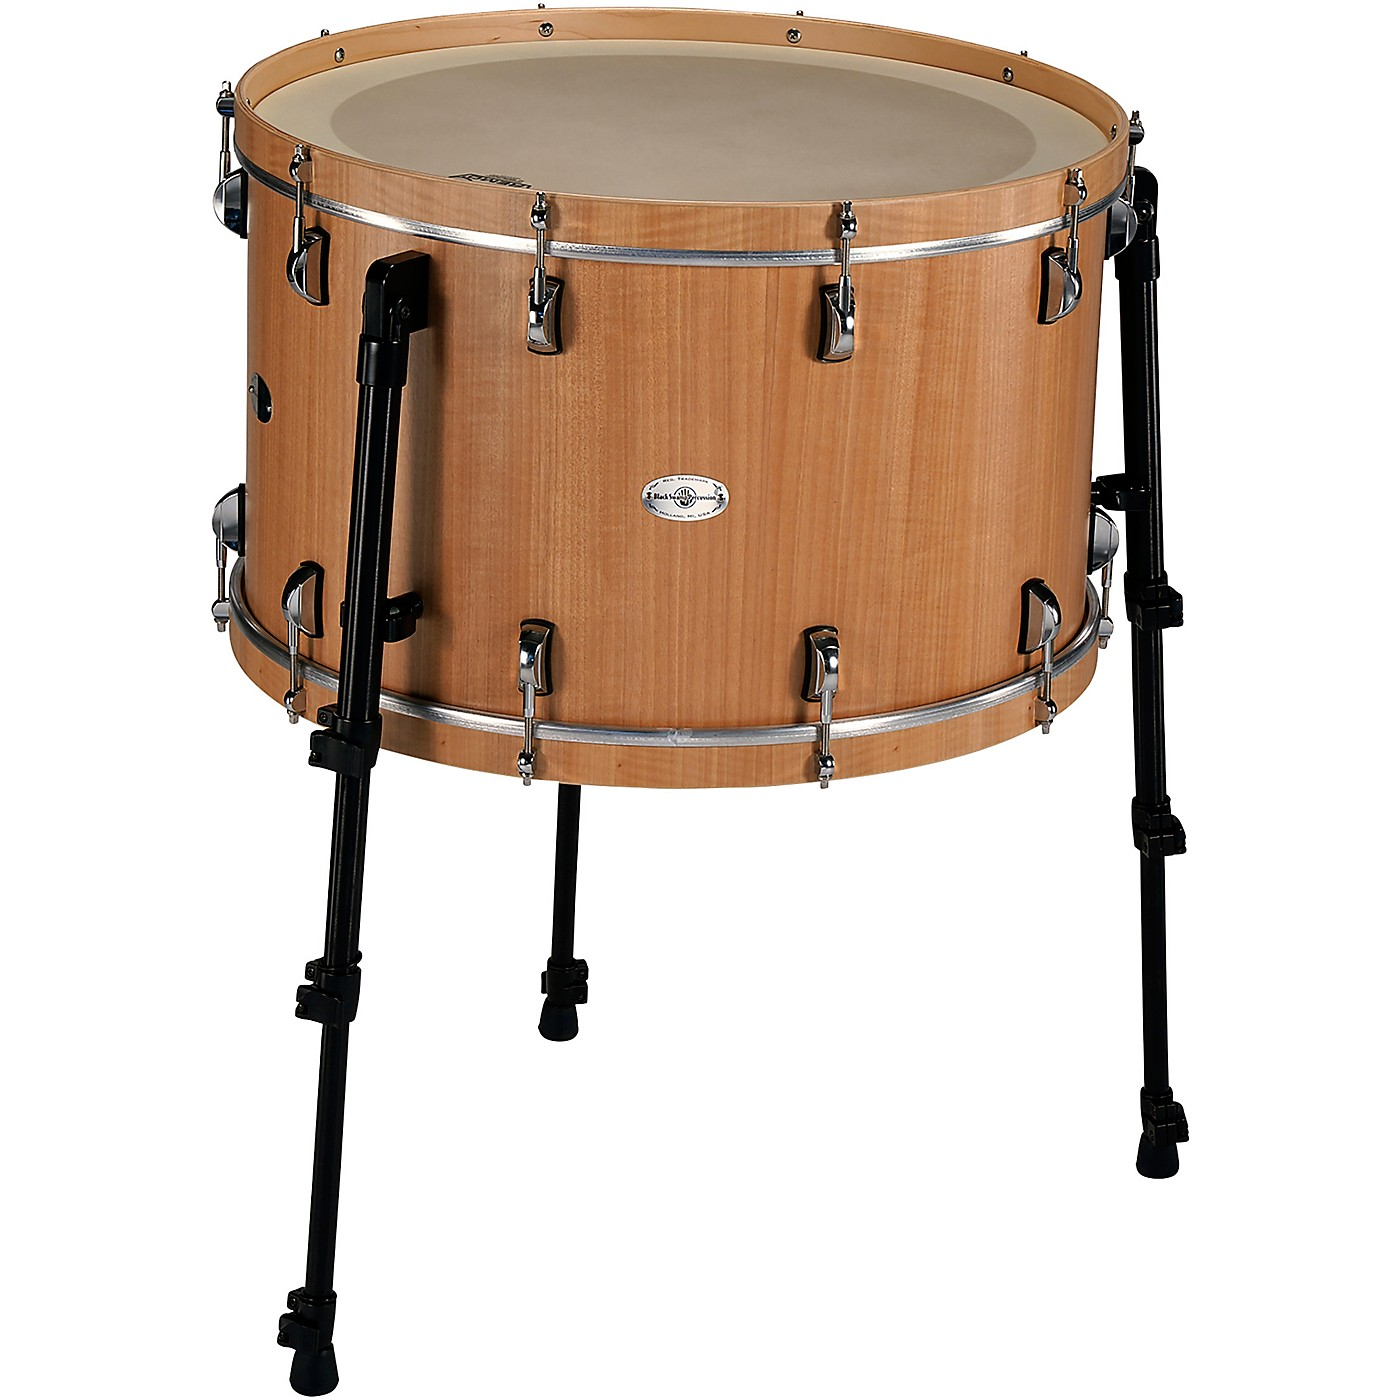 Black Swamp Percussion Multi-Bass Drum in Figured Anigre Veneer thumbnail